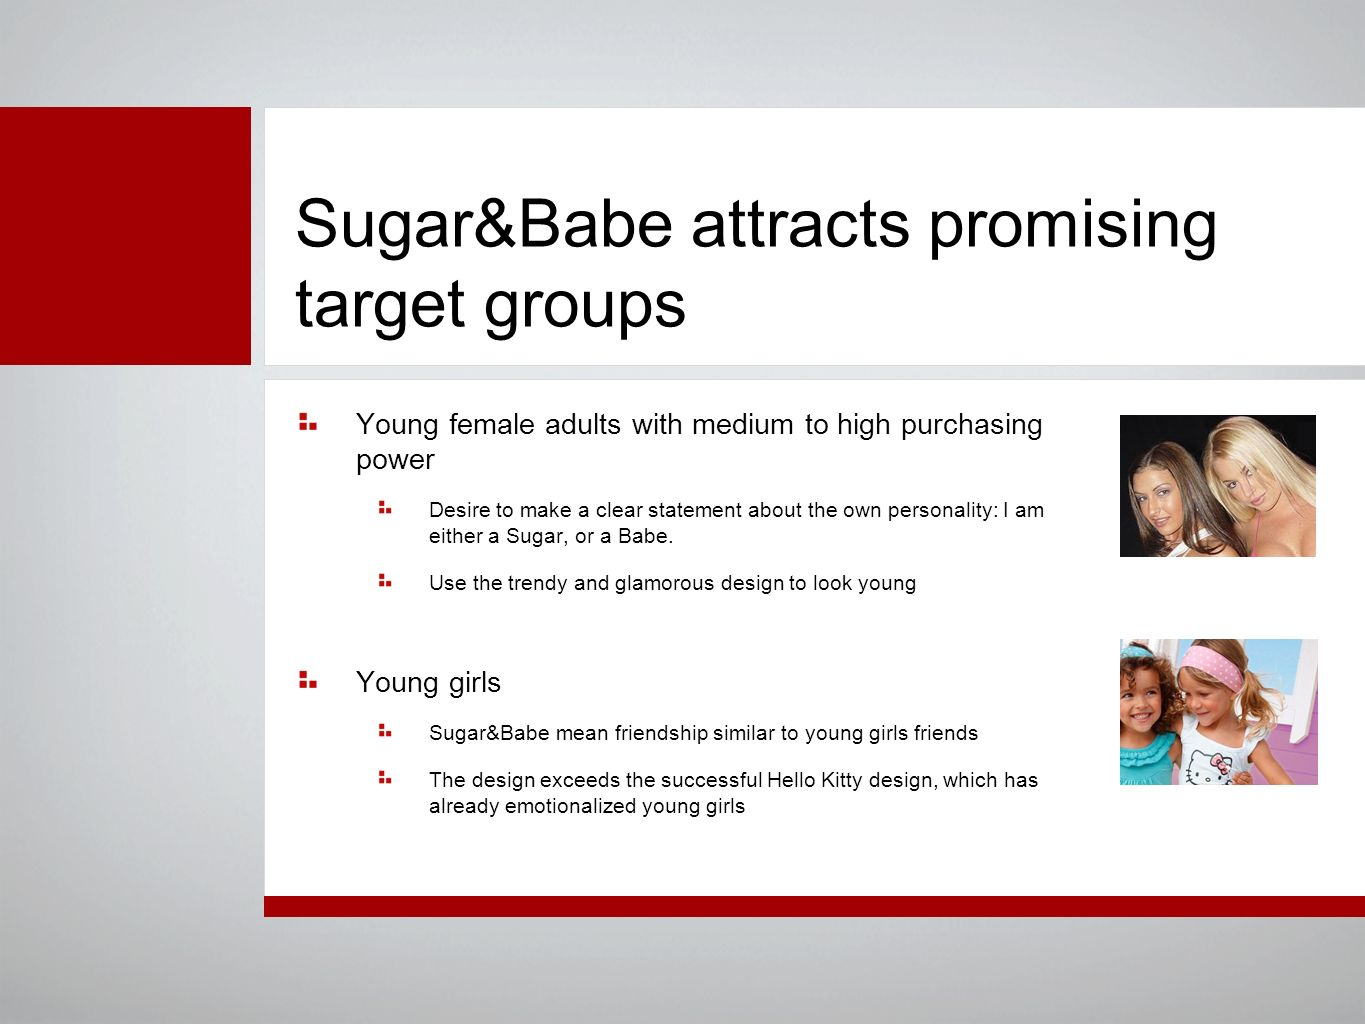 Sugar&Babe attracts promising target groups Young female adults with medium to high purchasing power Desire to make a clear statement about the own personality: I am either a Sugar, or a Babe.